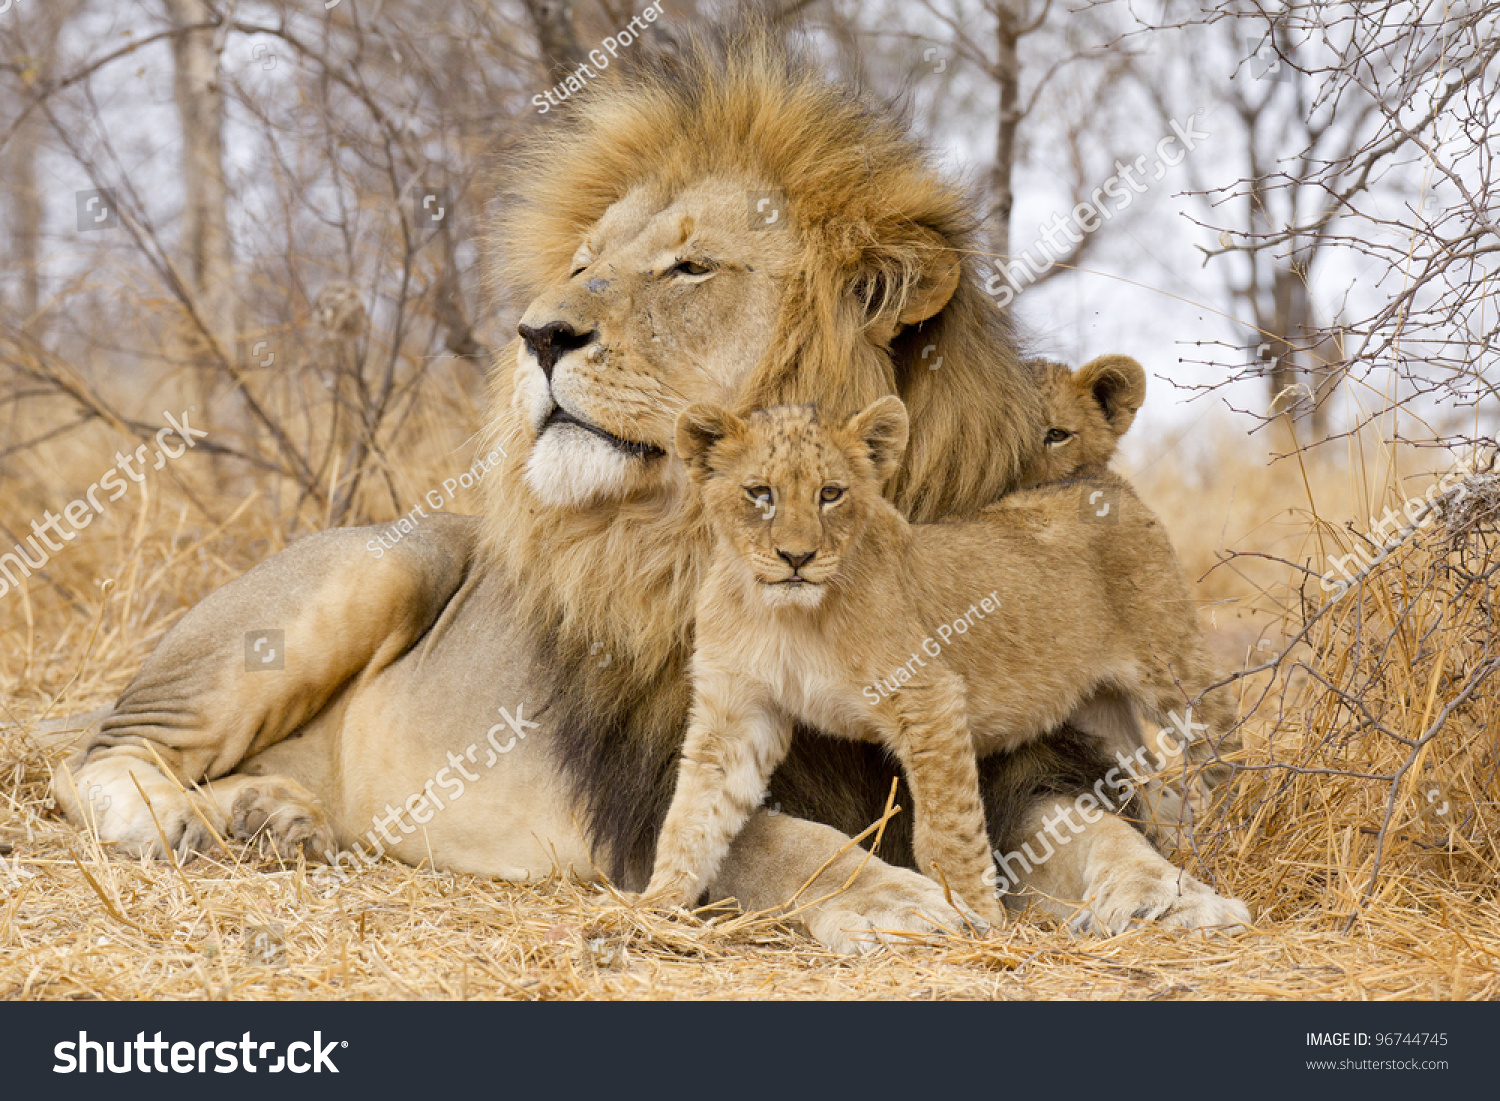 South africa big 5 animals pictures 5 Free